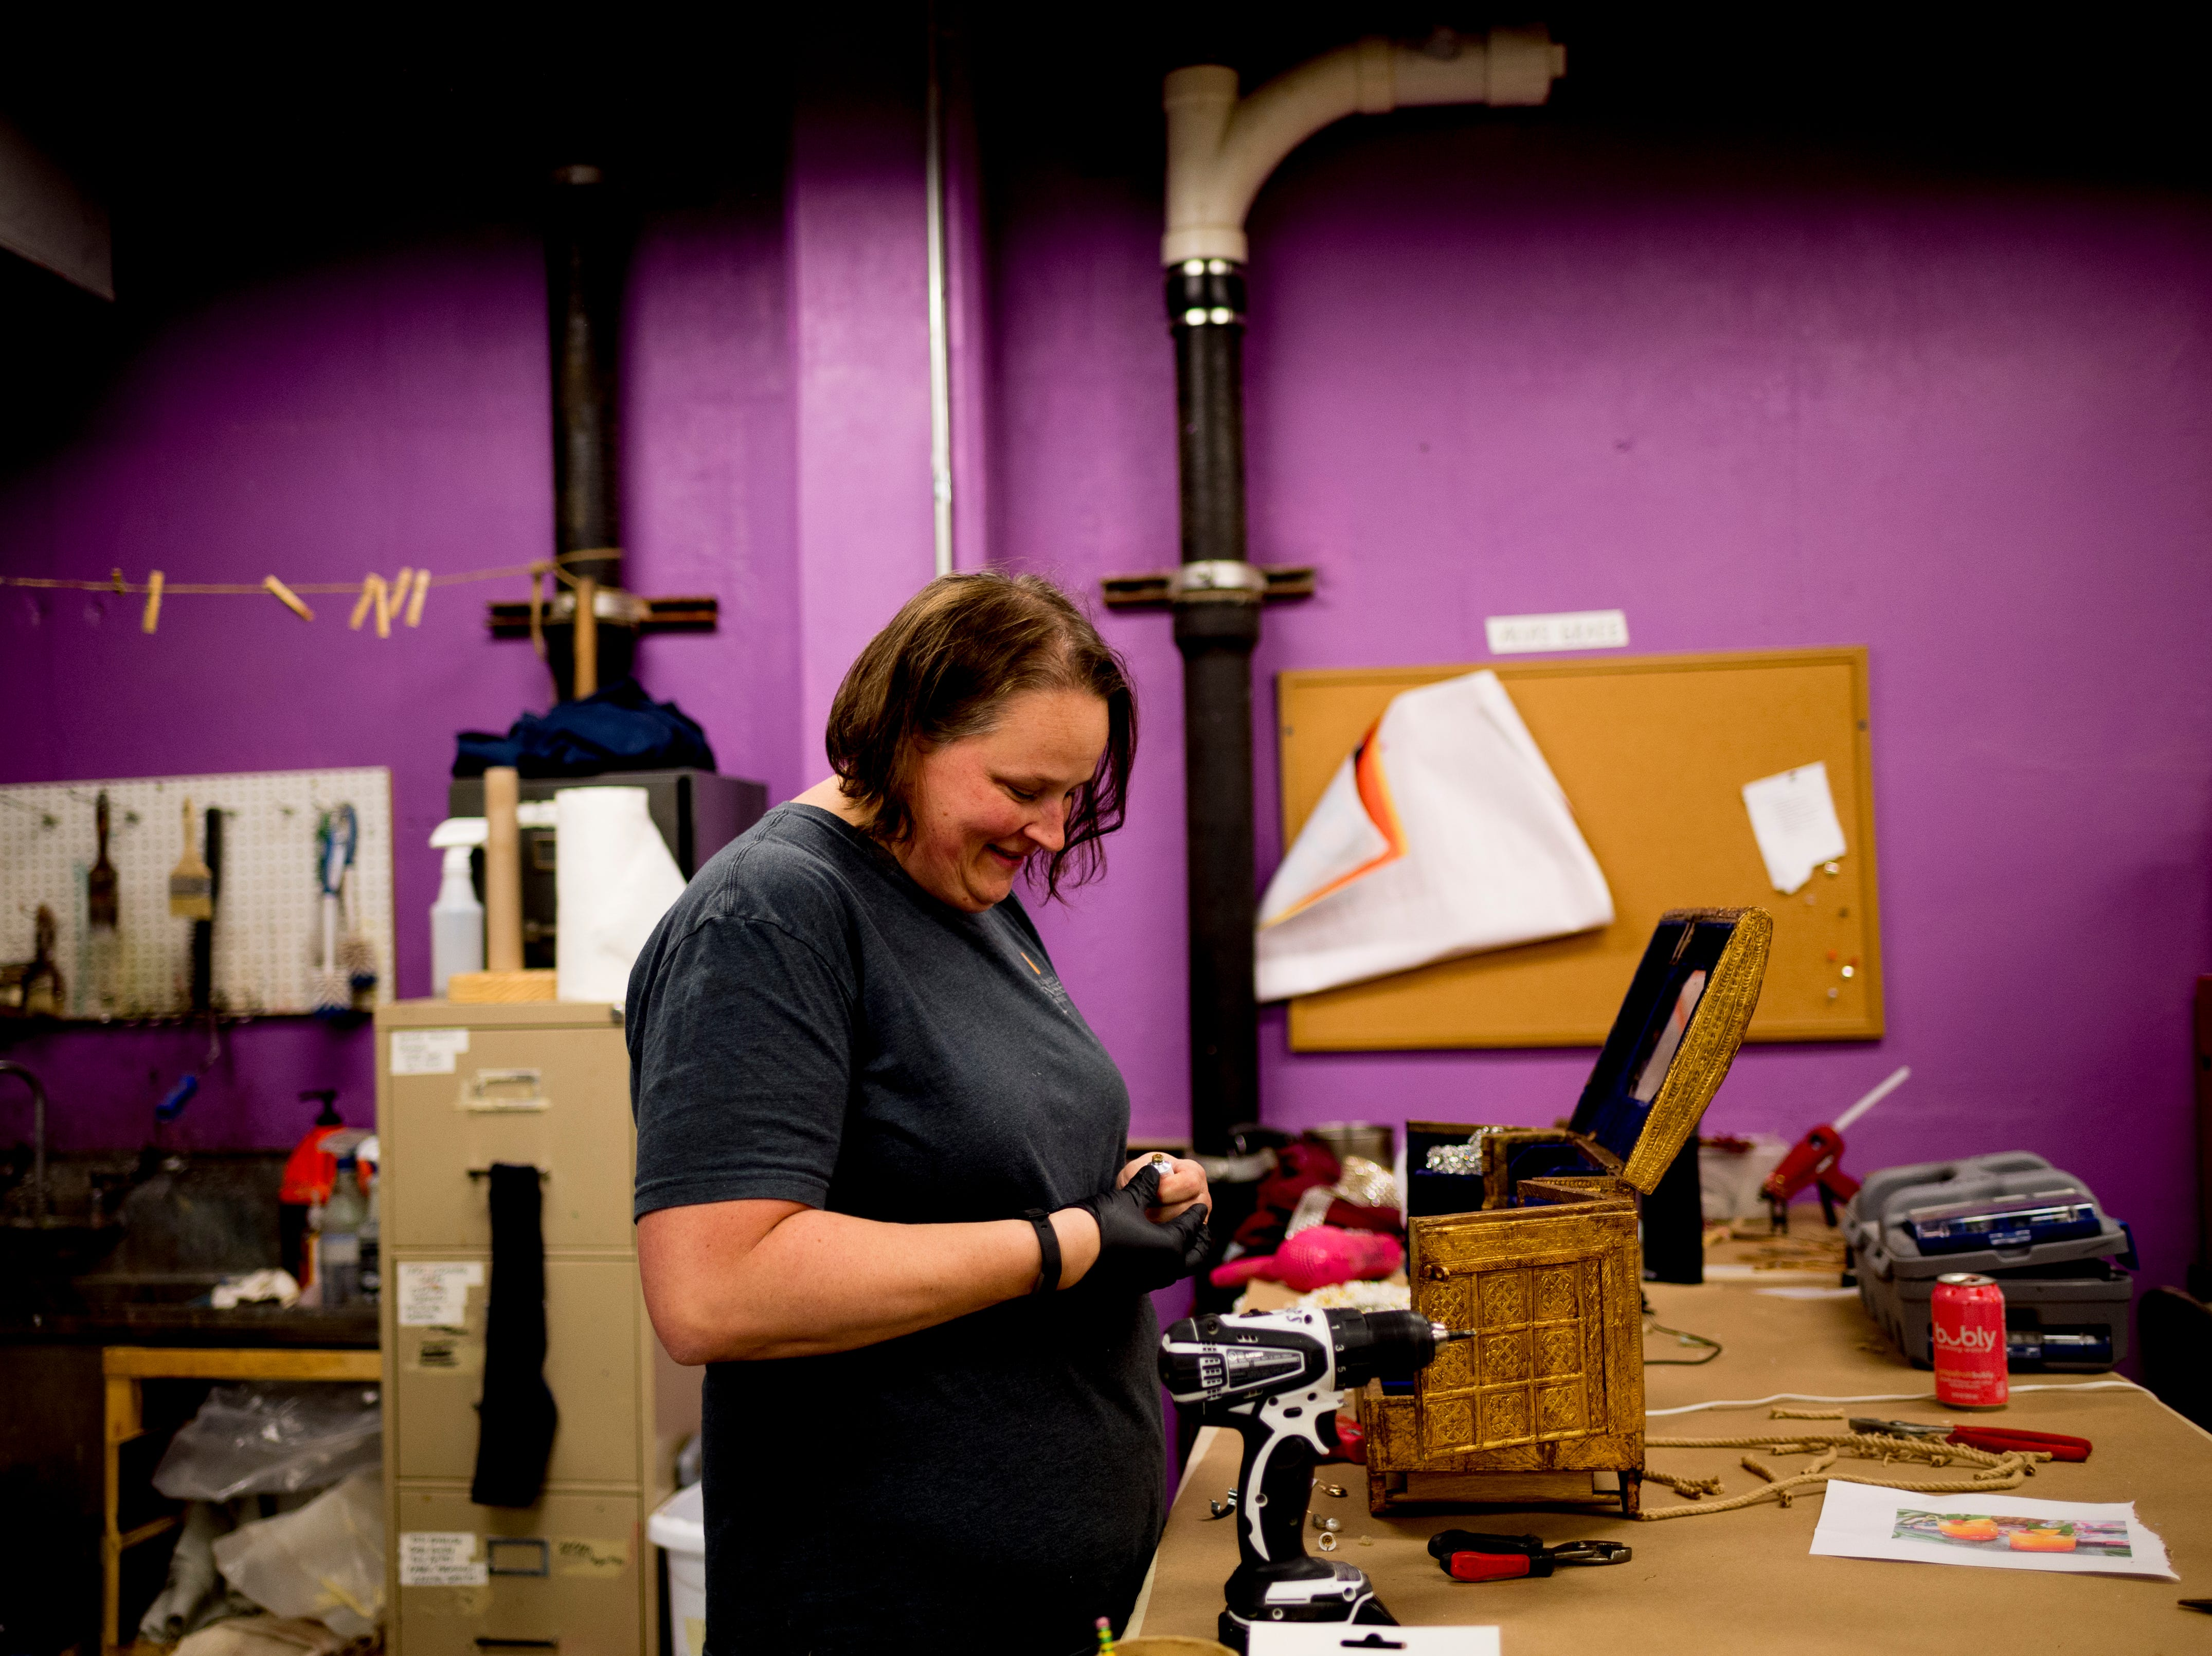 Prop Shop Supervisor Christy Fogarty prepares a jewelry chest ahead of opening day for Candide at the Clarence Brown Theatre  in Knoxville, Tennessee on Tuesday, August 14, 2018. Leonard BernsteinÕs acclaimed operetta, Candide, is to open Friday, August 31, with previews beginning August 29.